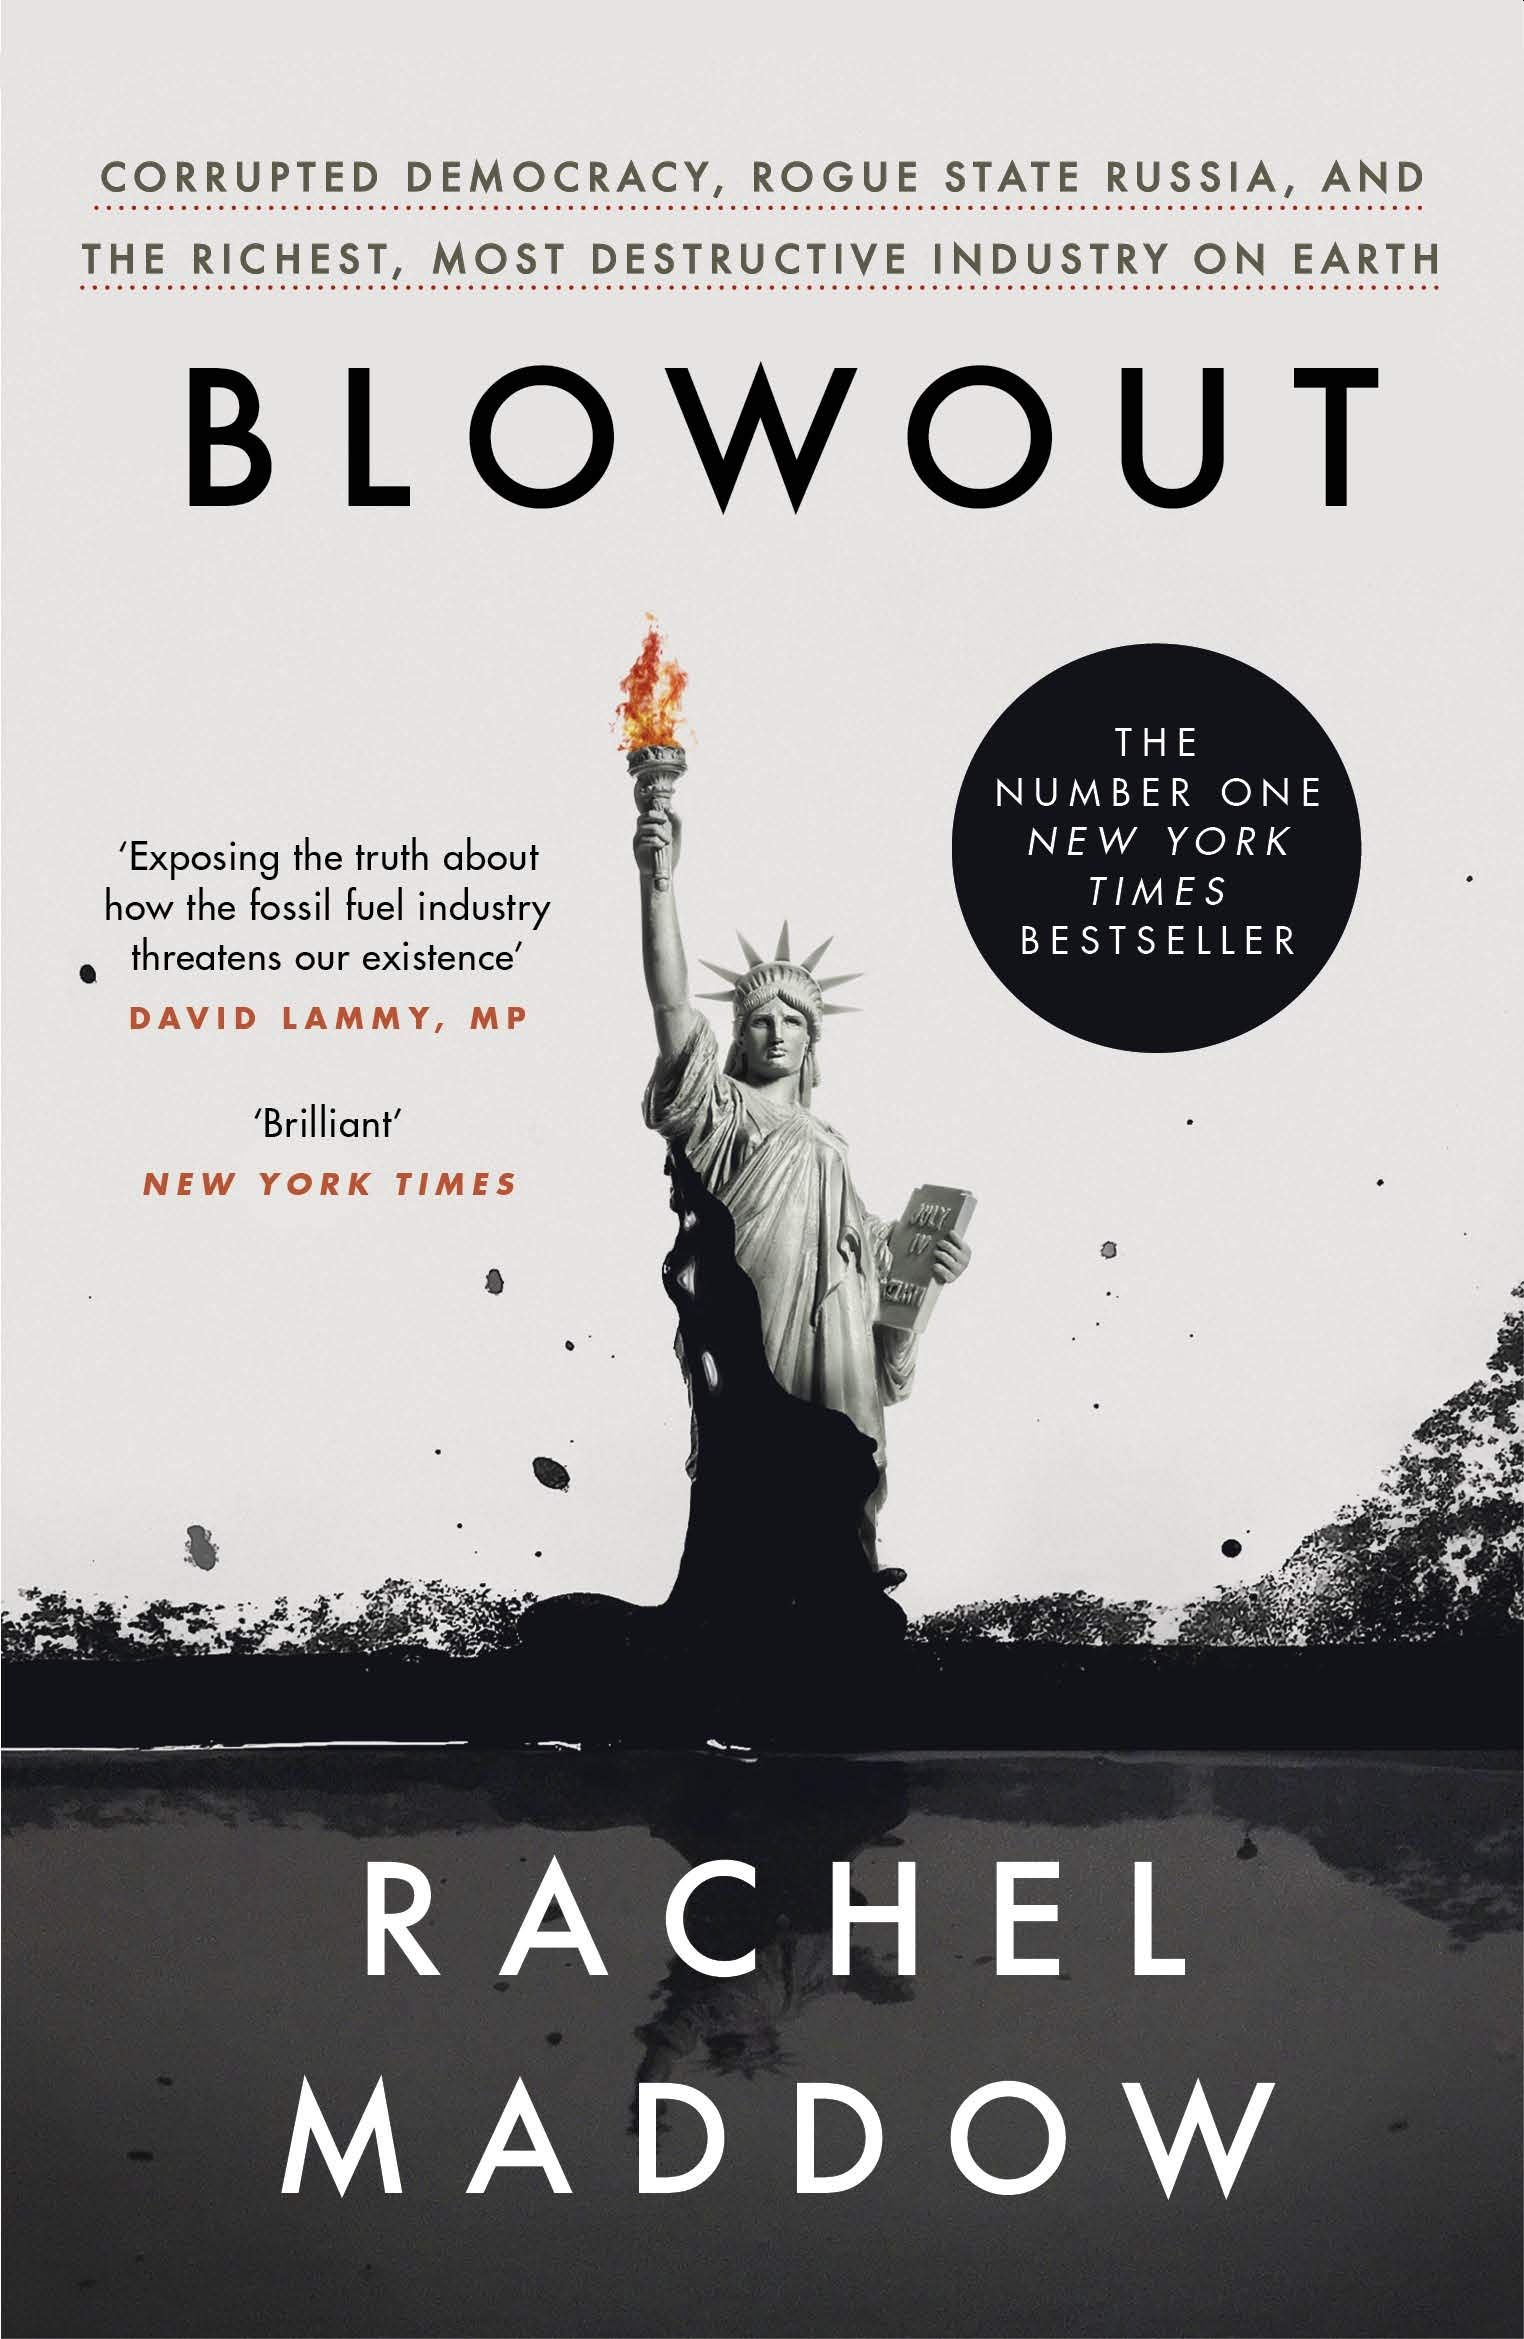 Picture of Blowout : Corrupted Democracy, Rogue State Russia, and the Richest, Most Destructive Industry on Earth